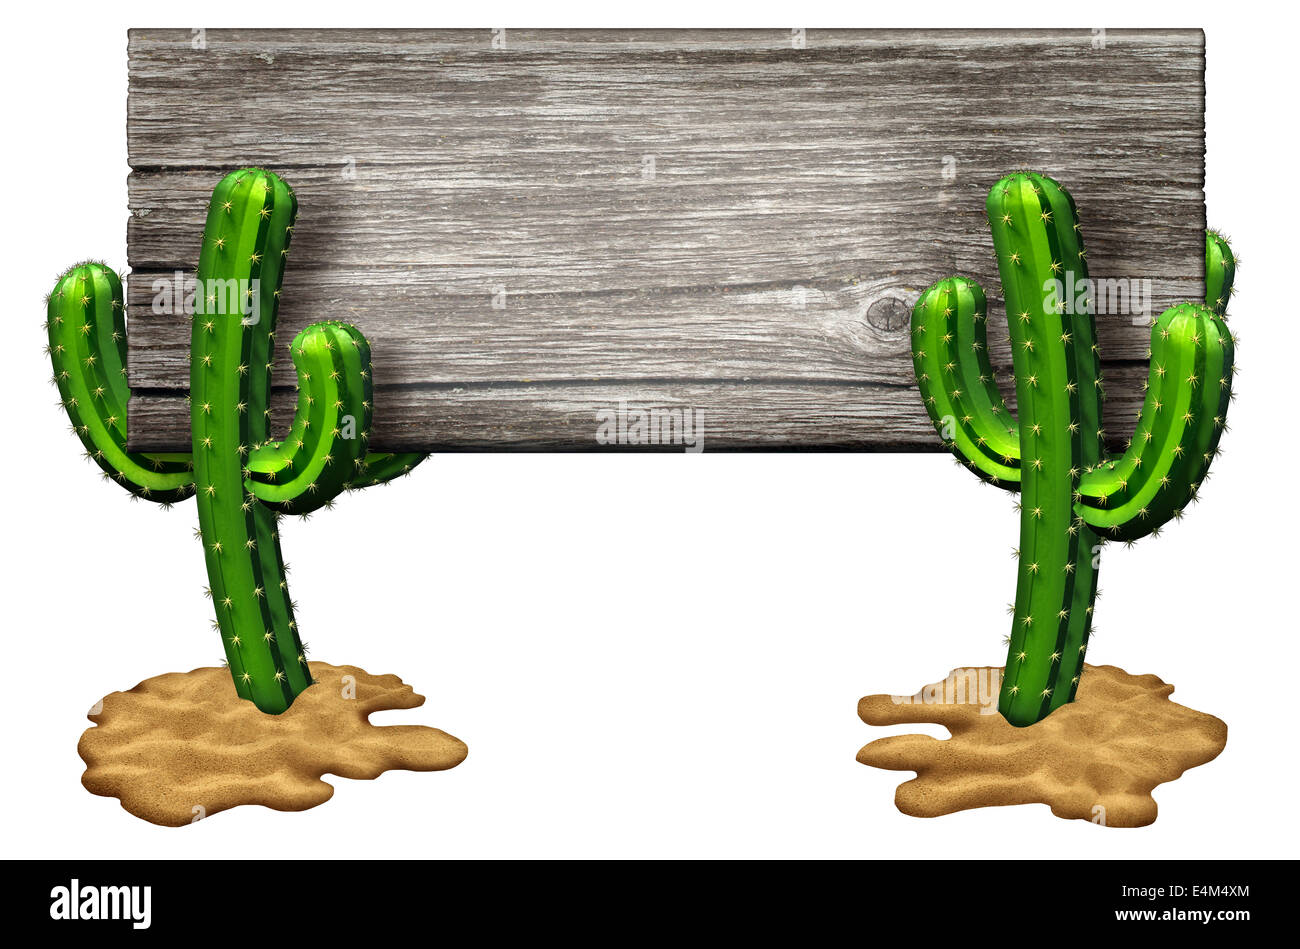 Cactus sign as two Cacti plants on a desert sand floor holding up an old rustic wood banner isolated on white as - Stock Image